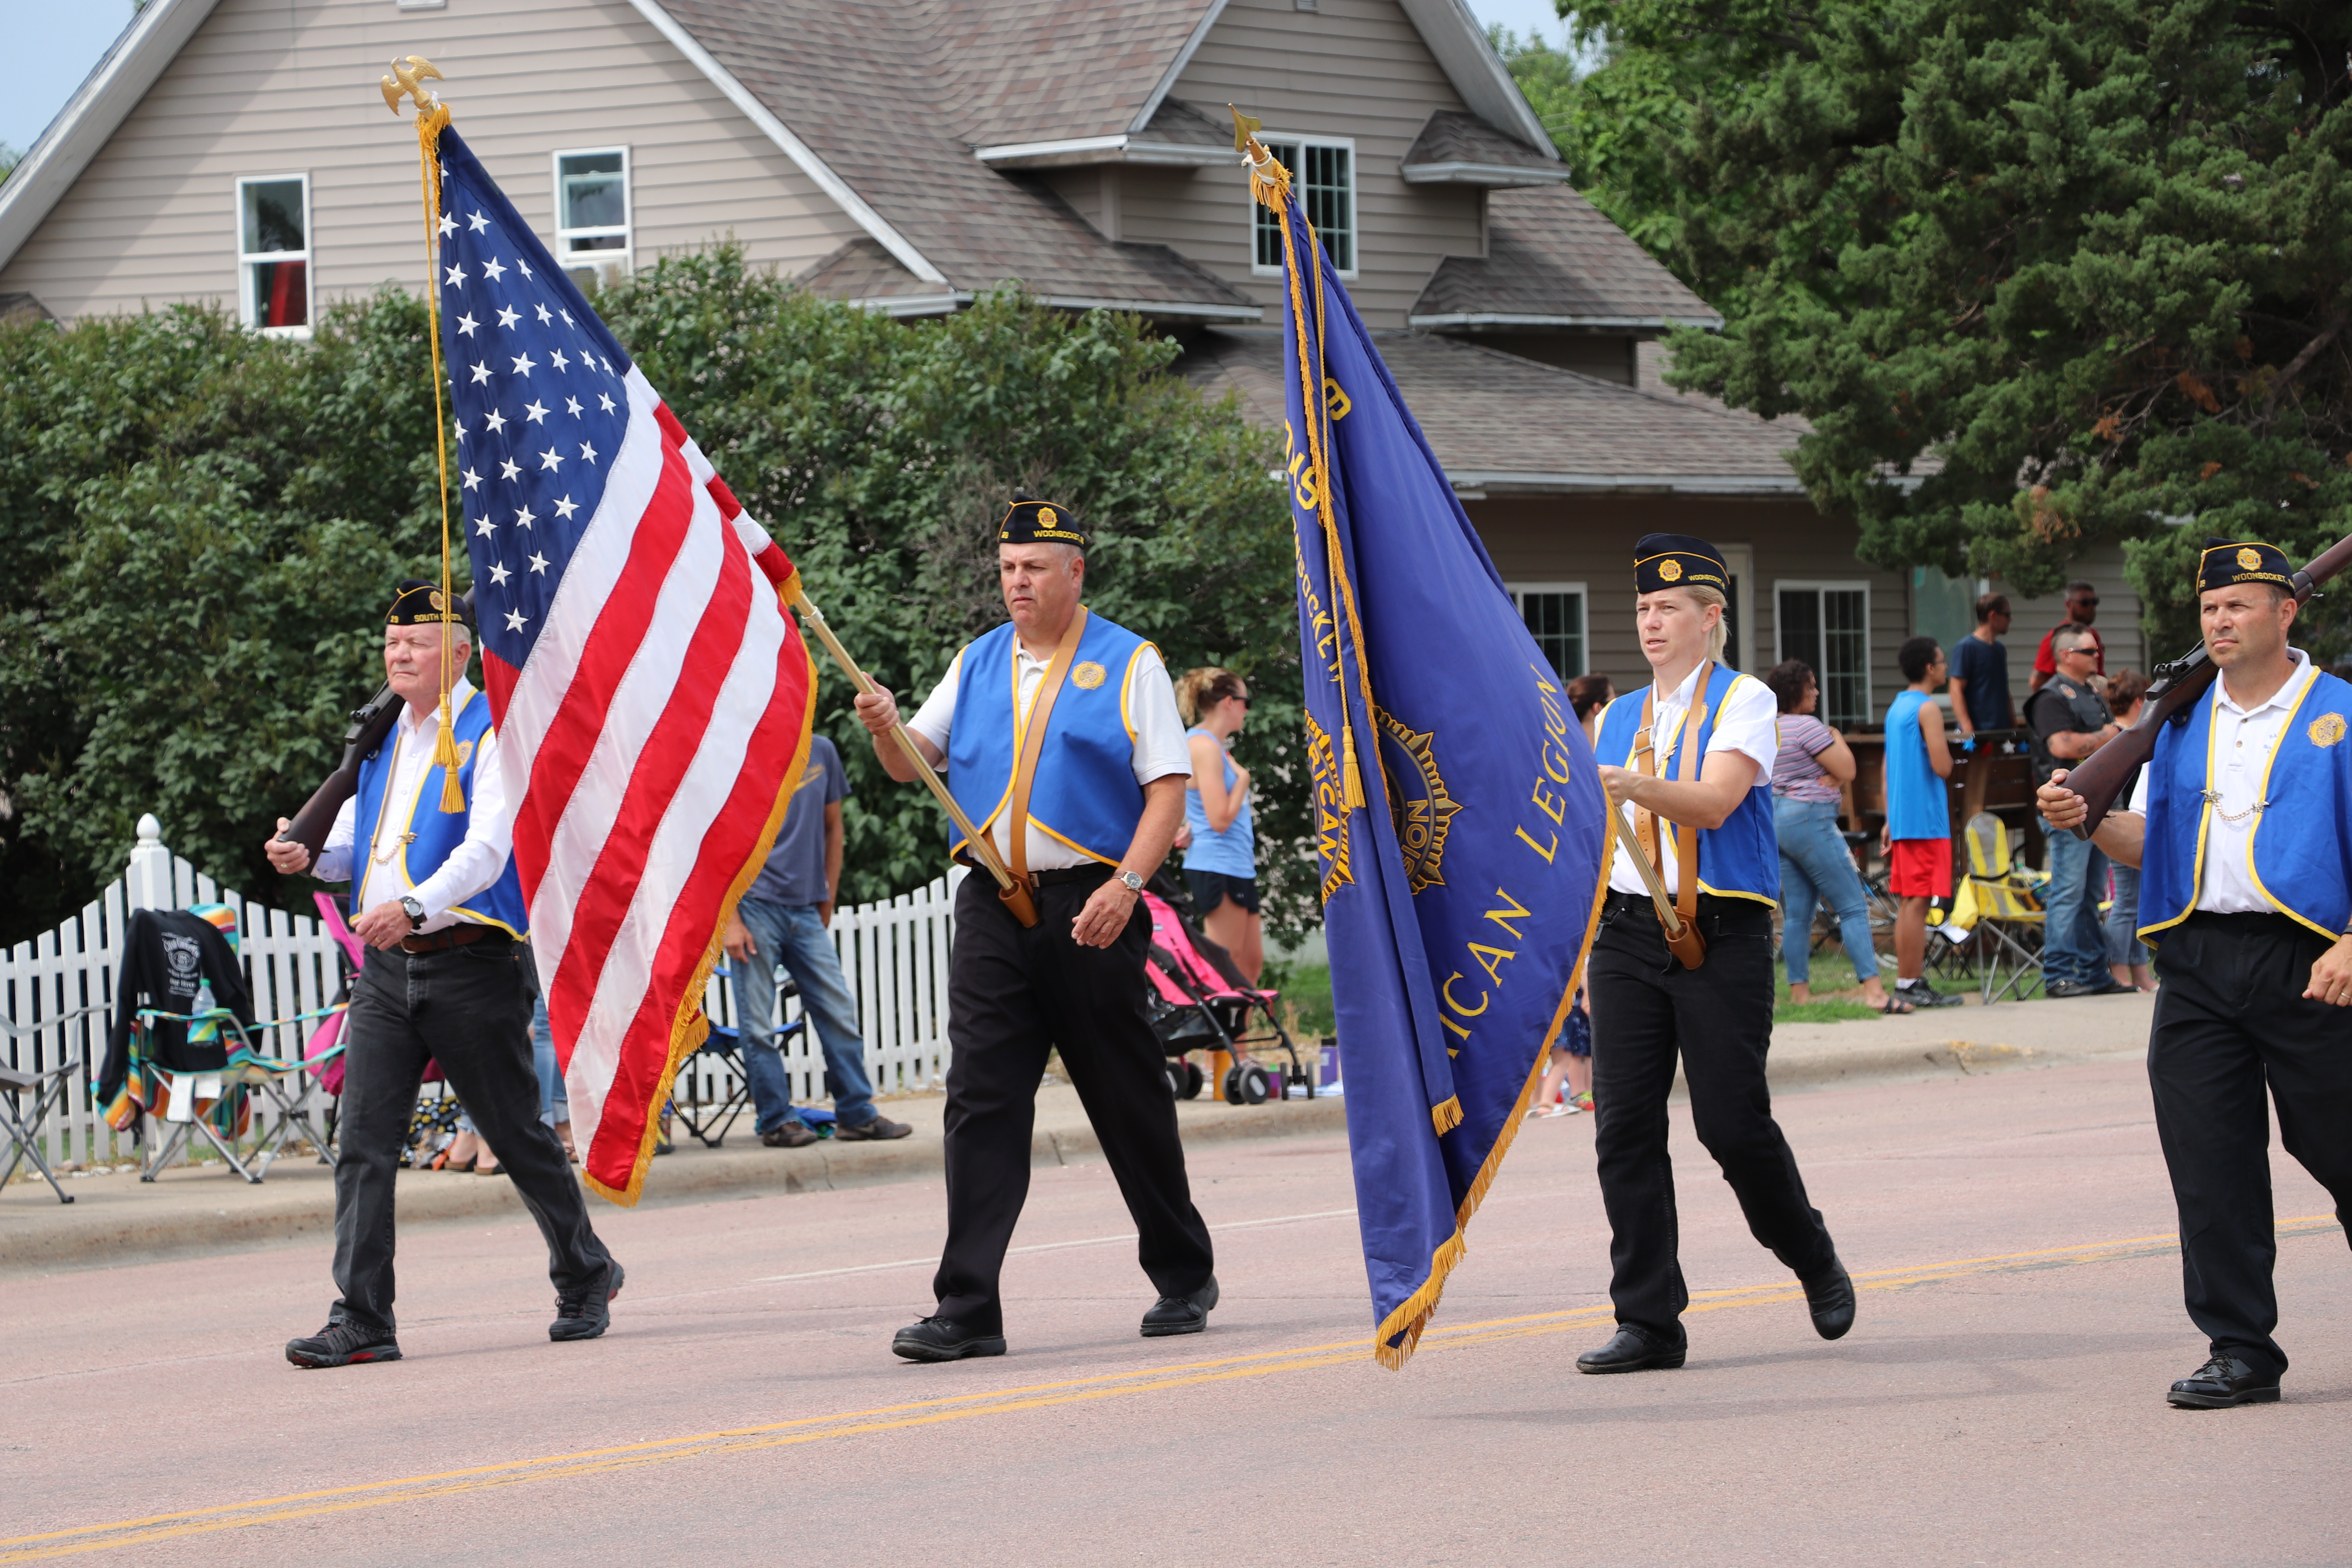 The annual Woonsocket Water Festival includes a parade led by the American Legion Post #29 Color Guard.